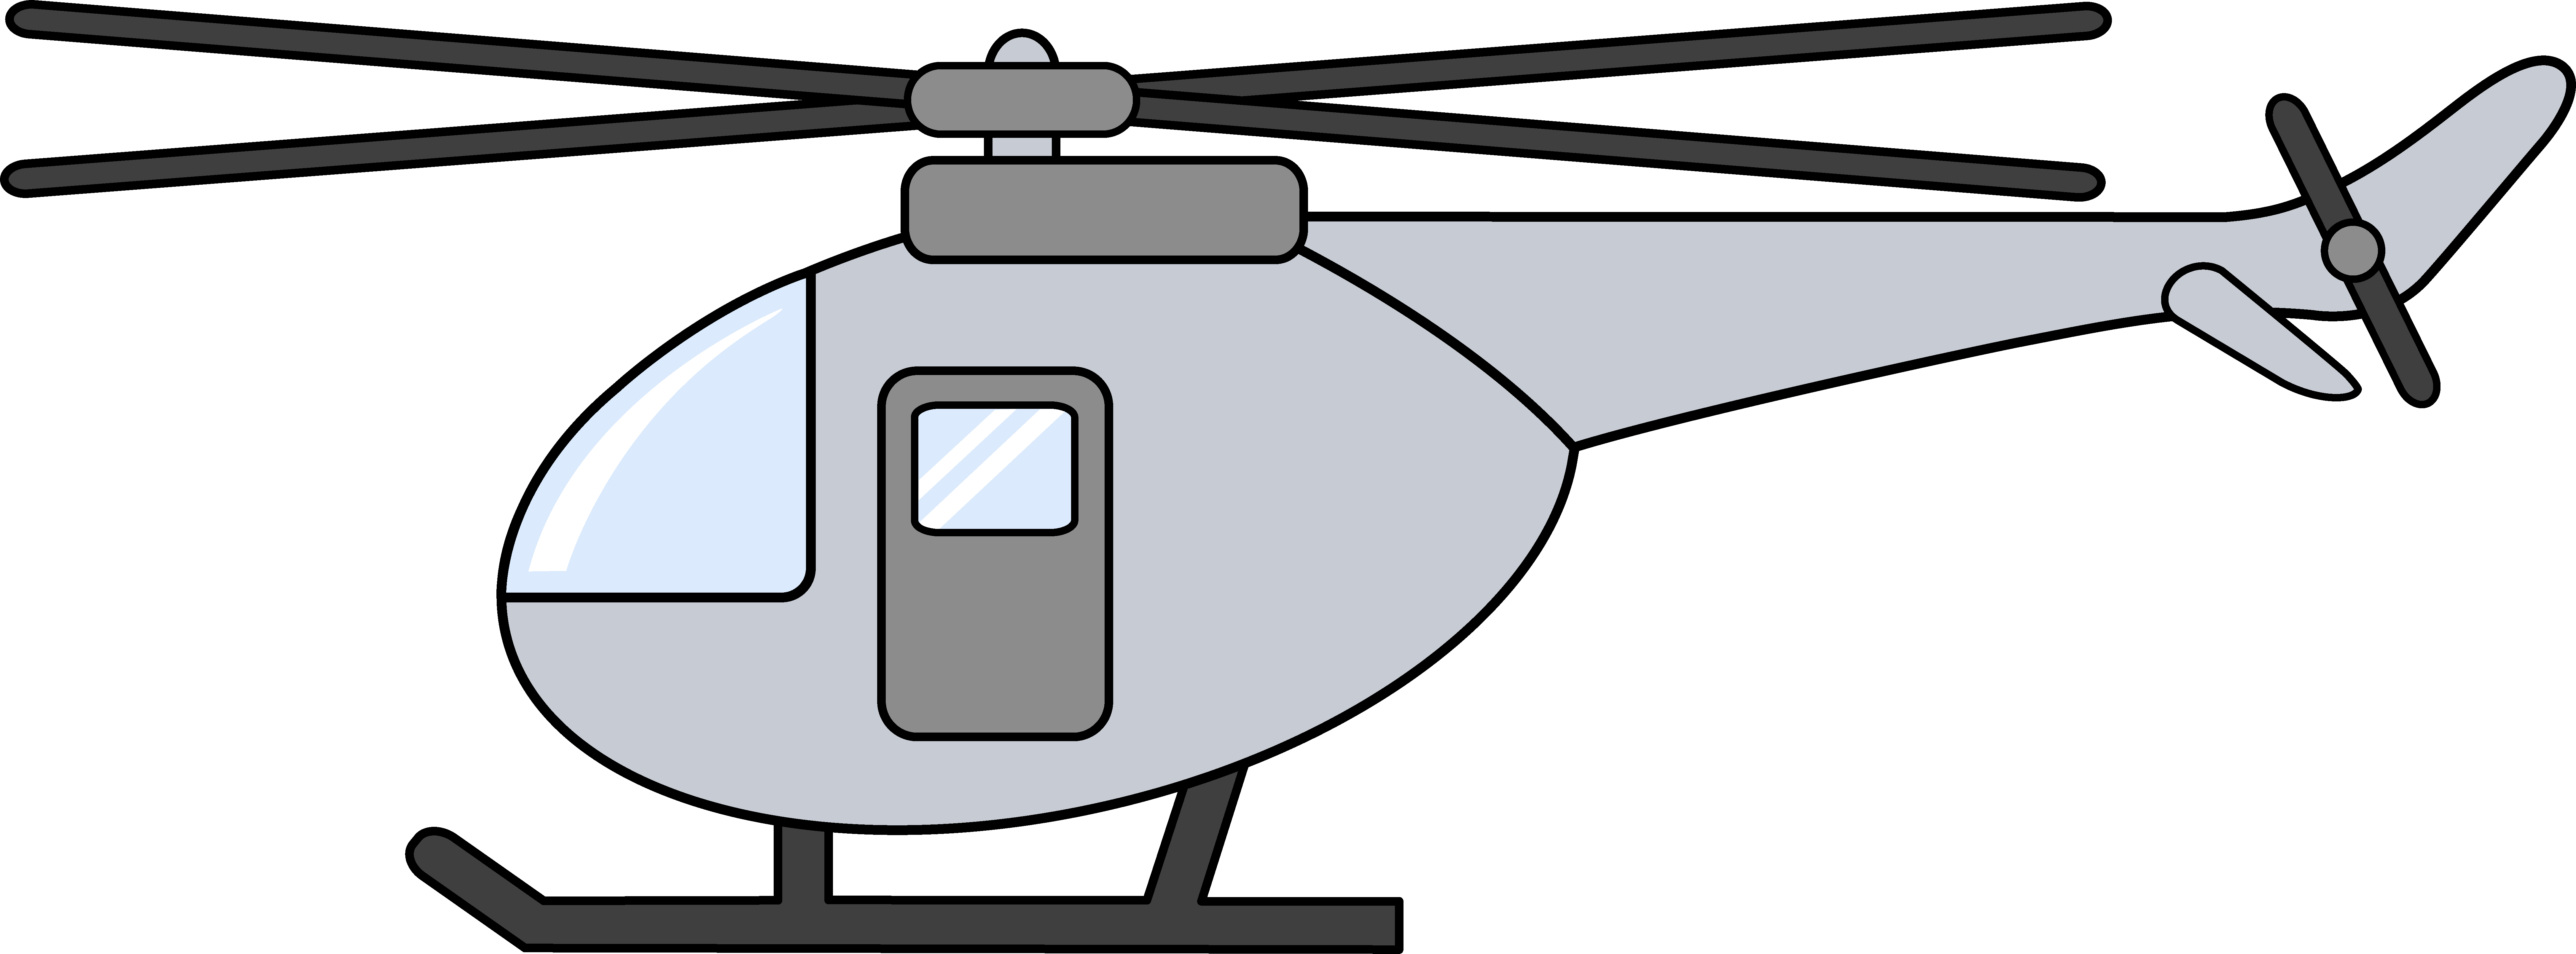 Helicopter clipart image picture royalty free download 76+ Helicopter Clip Art   ClipartLook picture royalty free download